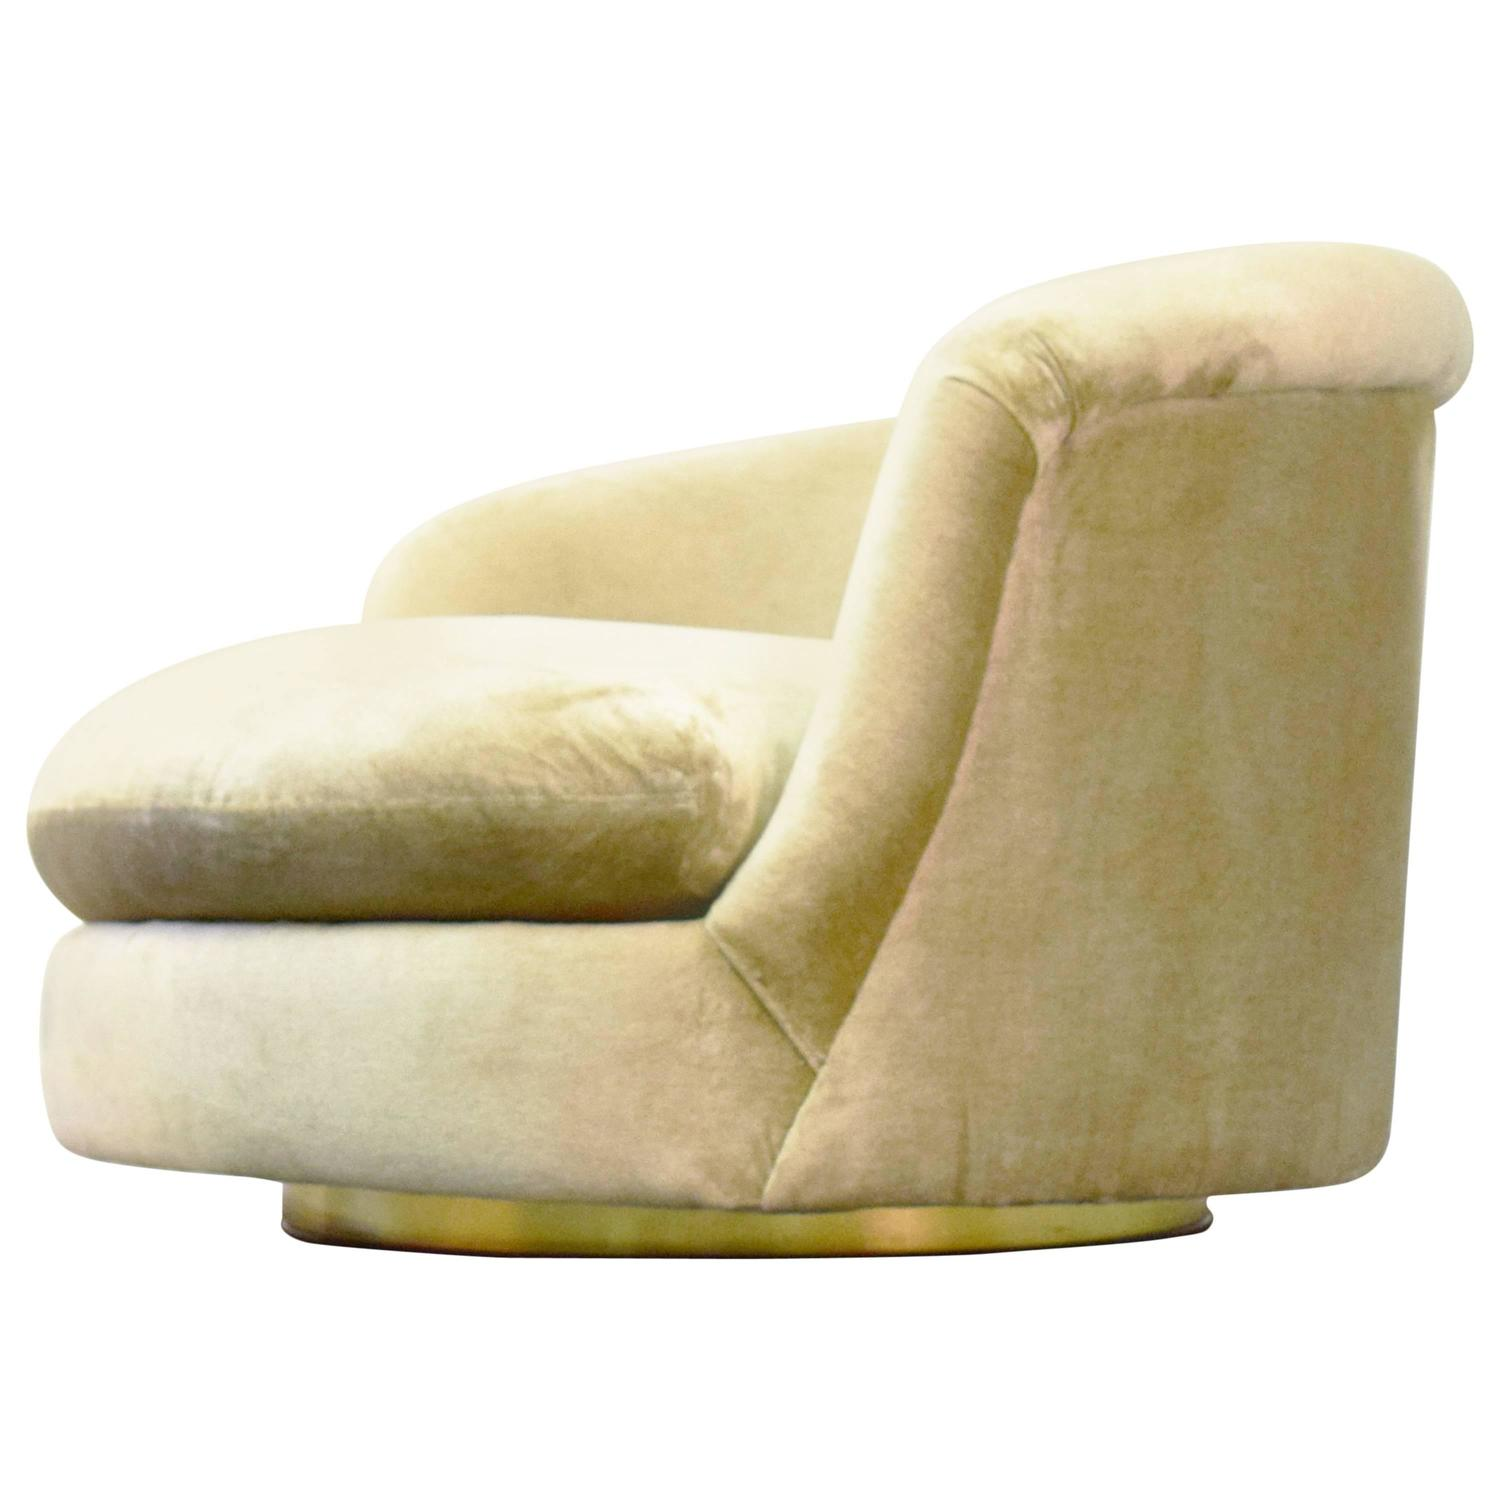 Milo Baughman Swivel Lounge Chair at 1stdibs